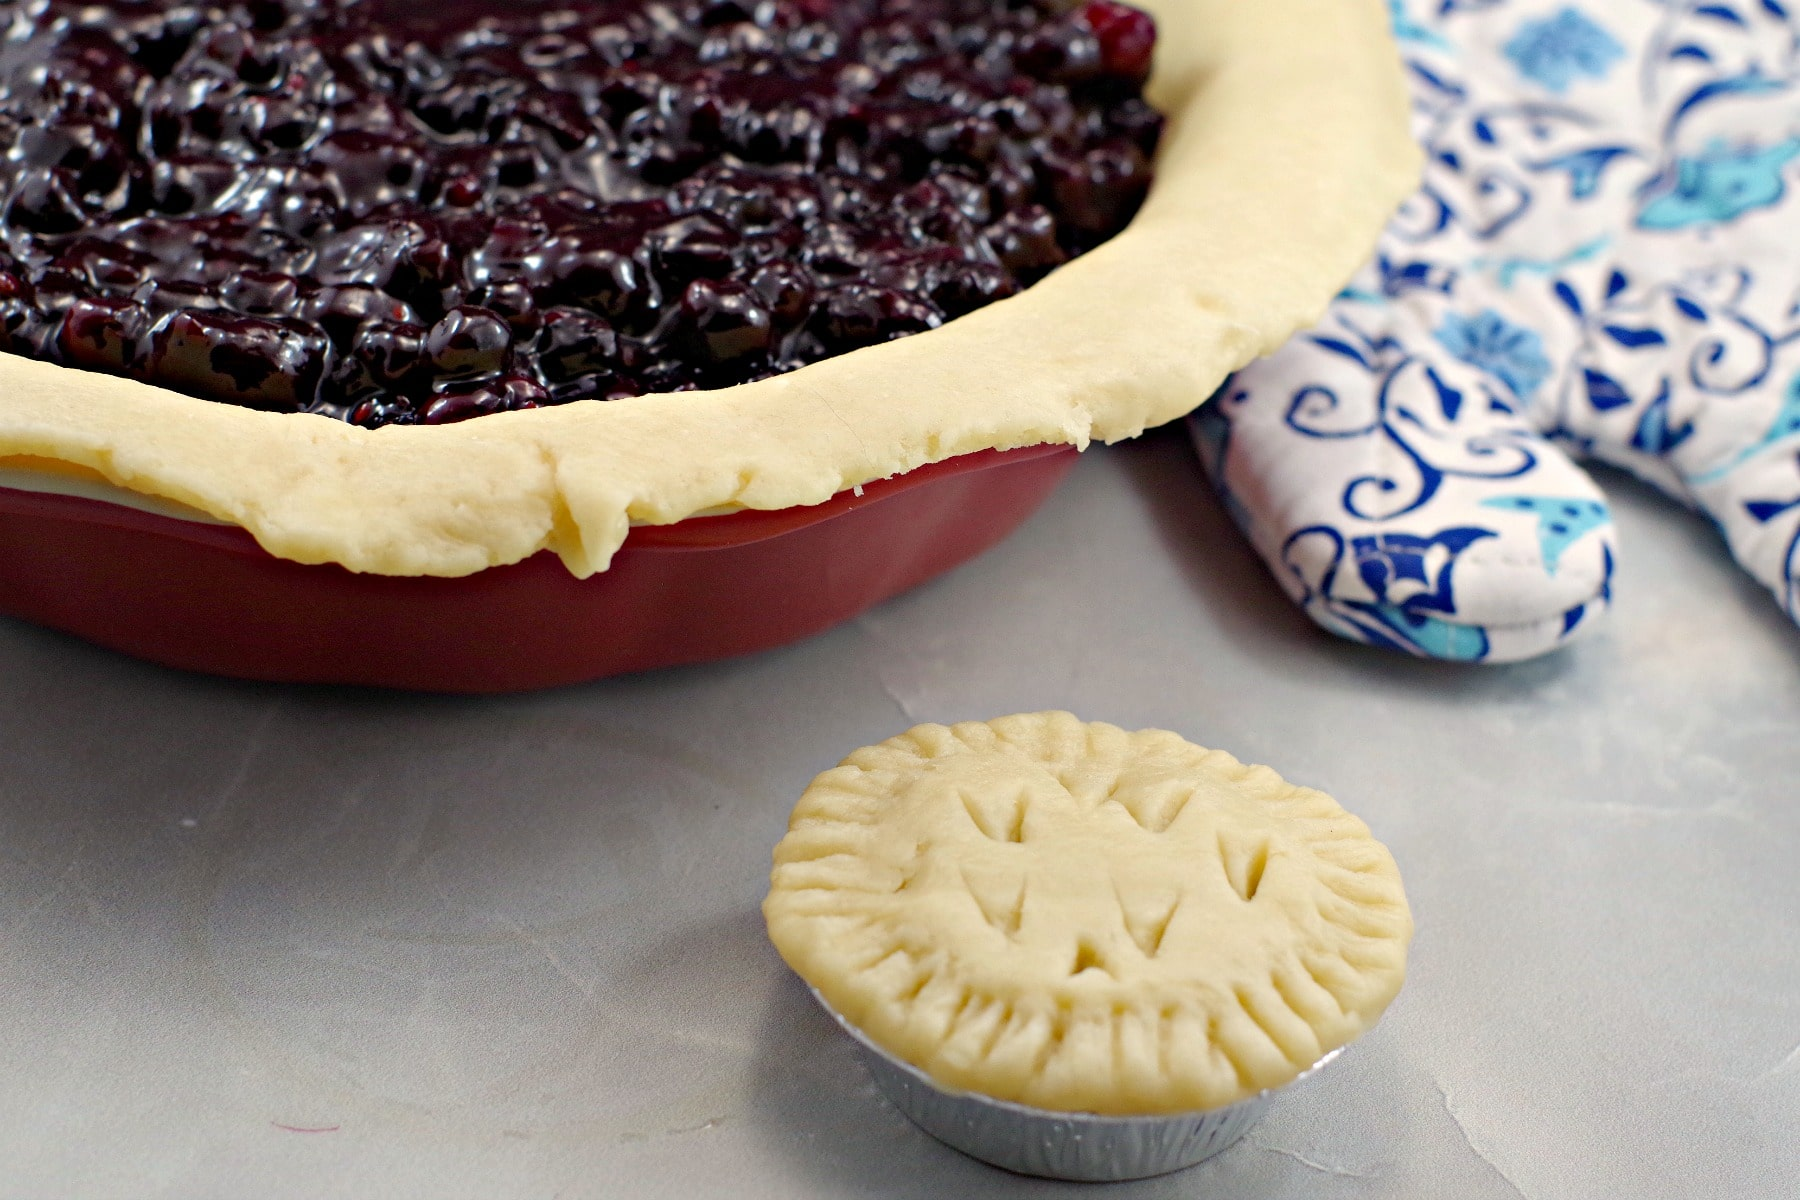 Saskatoon berry filling in pie crust with tart in foreground